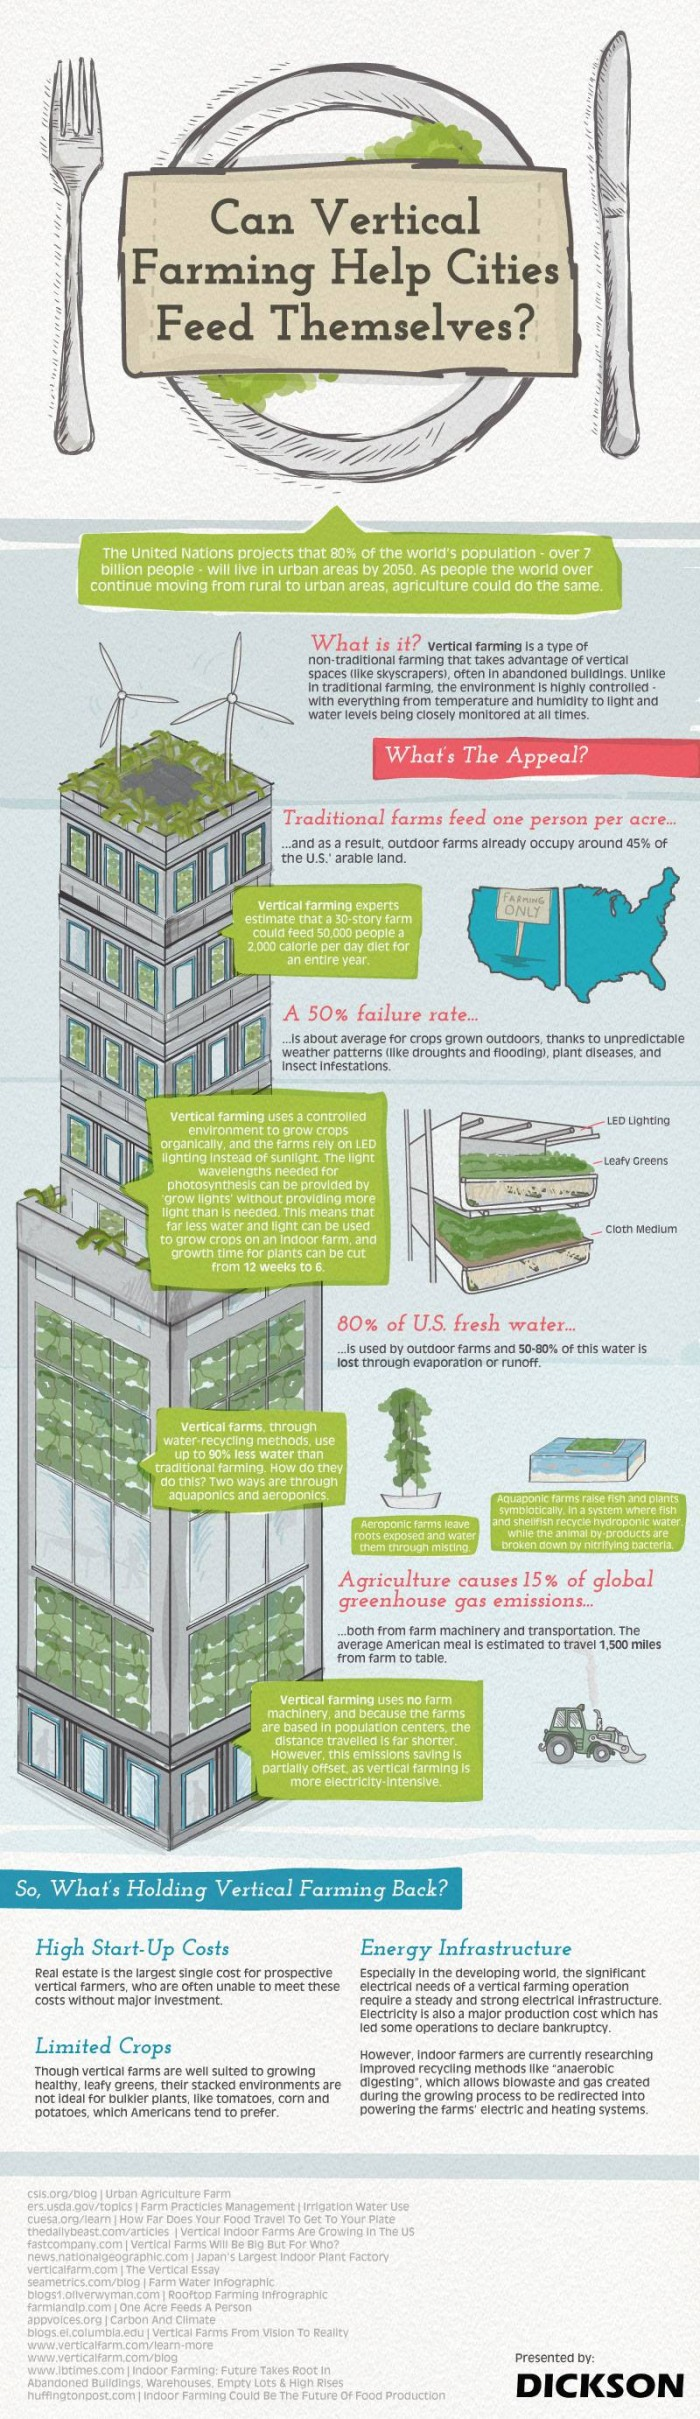 can-vertical-farming-help-cities-feed-themselves